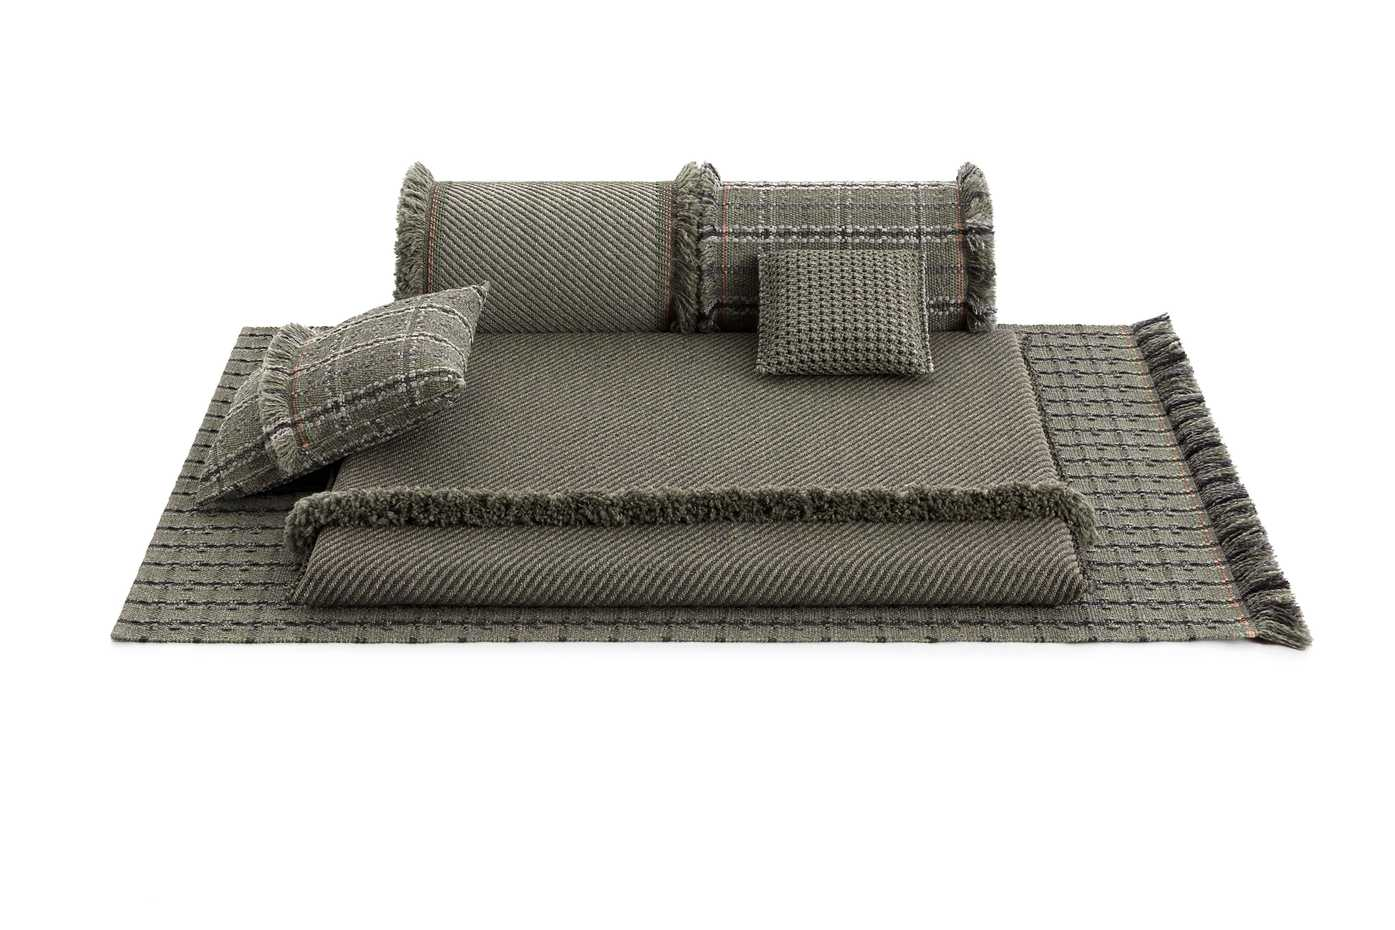 Garden Layers Mattress  by Gan Rugs product image 5